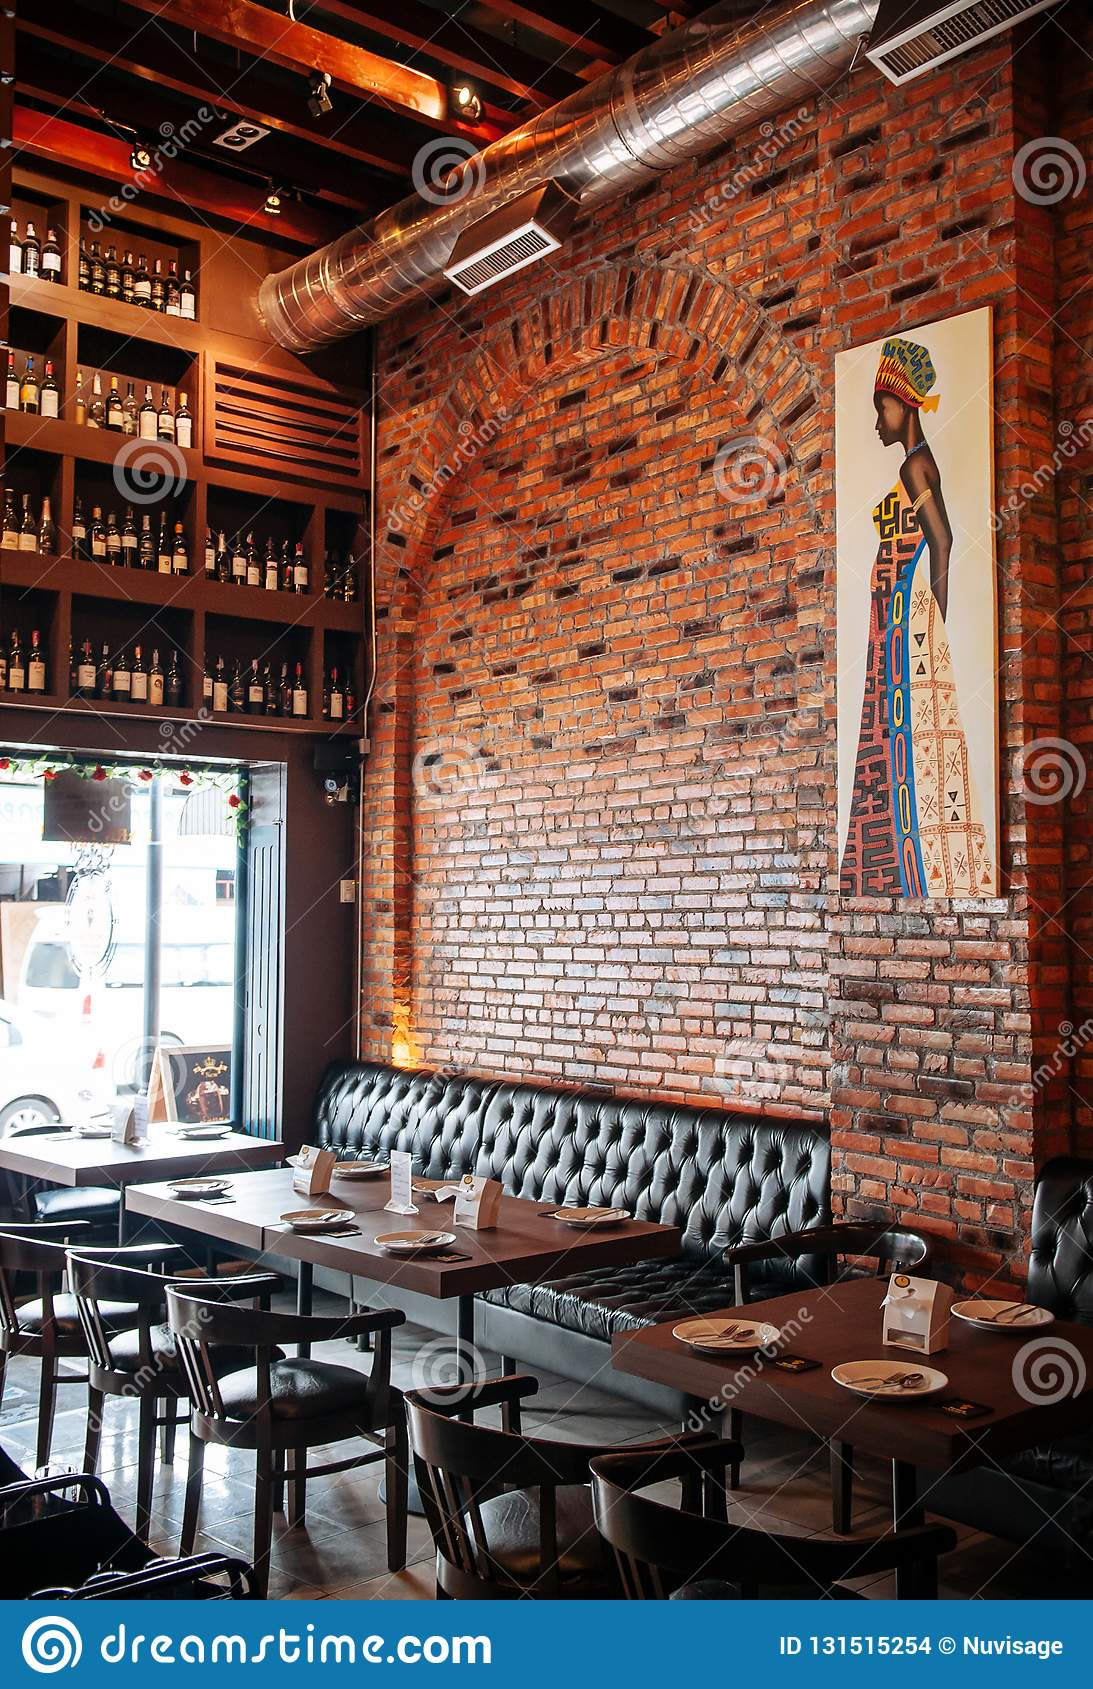 Songkhla Thailand Vibrant Cool Industrial Loft Restaurant Interior Style With Leather Couch Wood Chairs And Editorial Stock Image Image Of Home Building 131515254